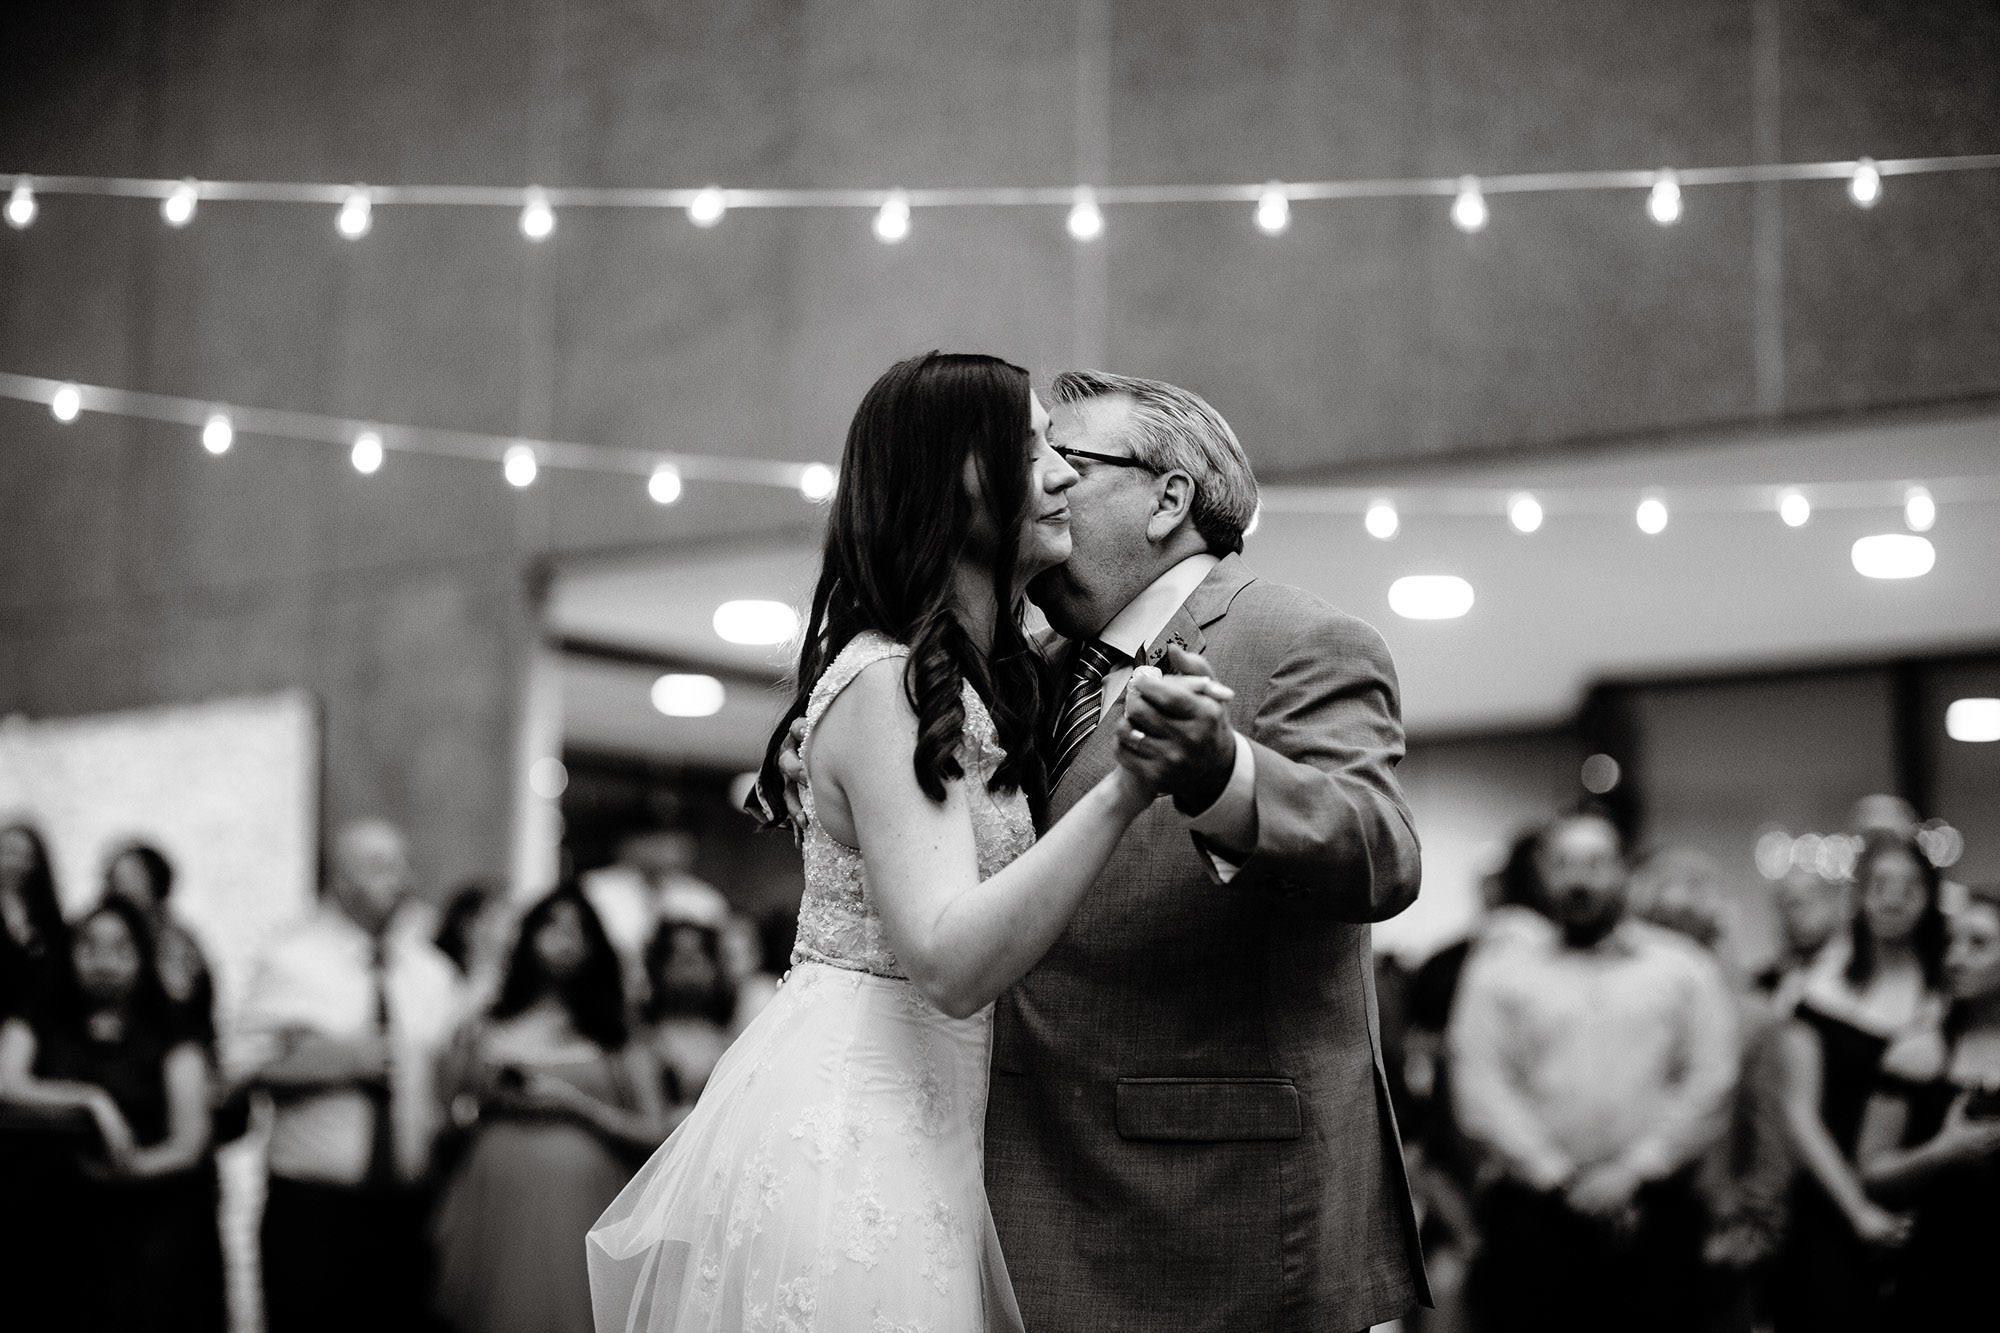 The bride dances with her father during the American Institute of Architects wedding reception.